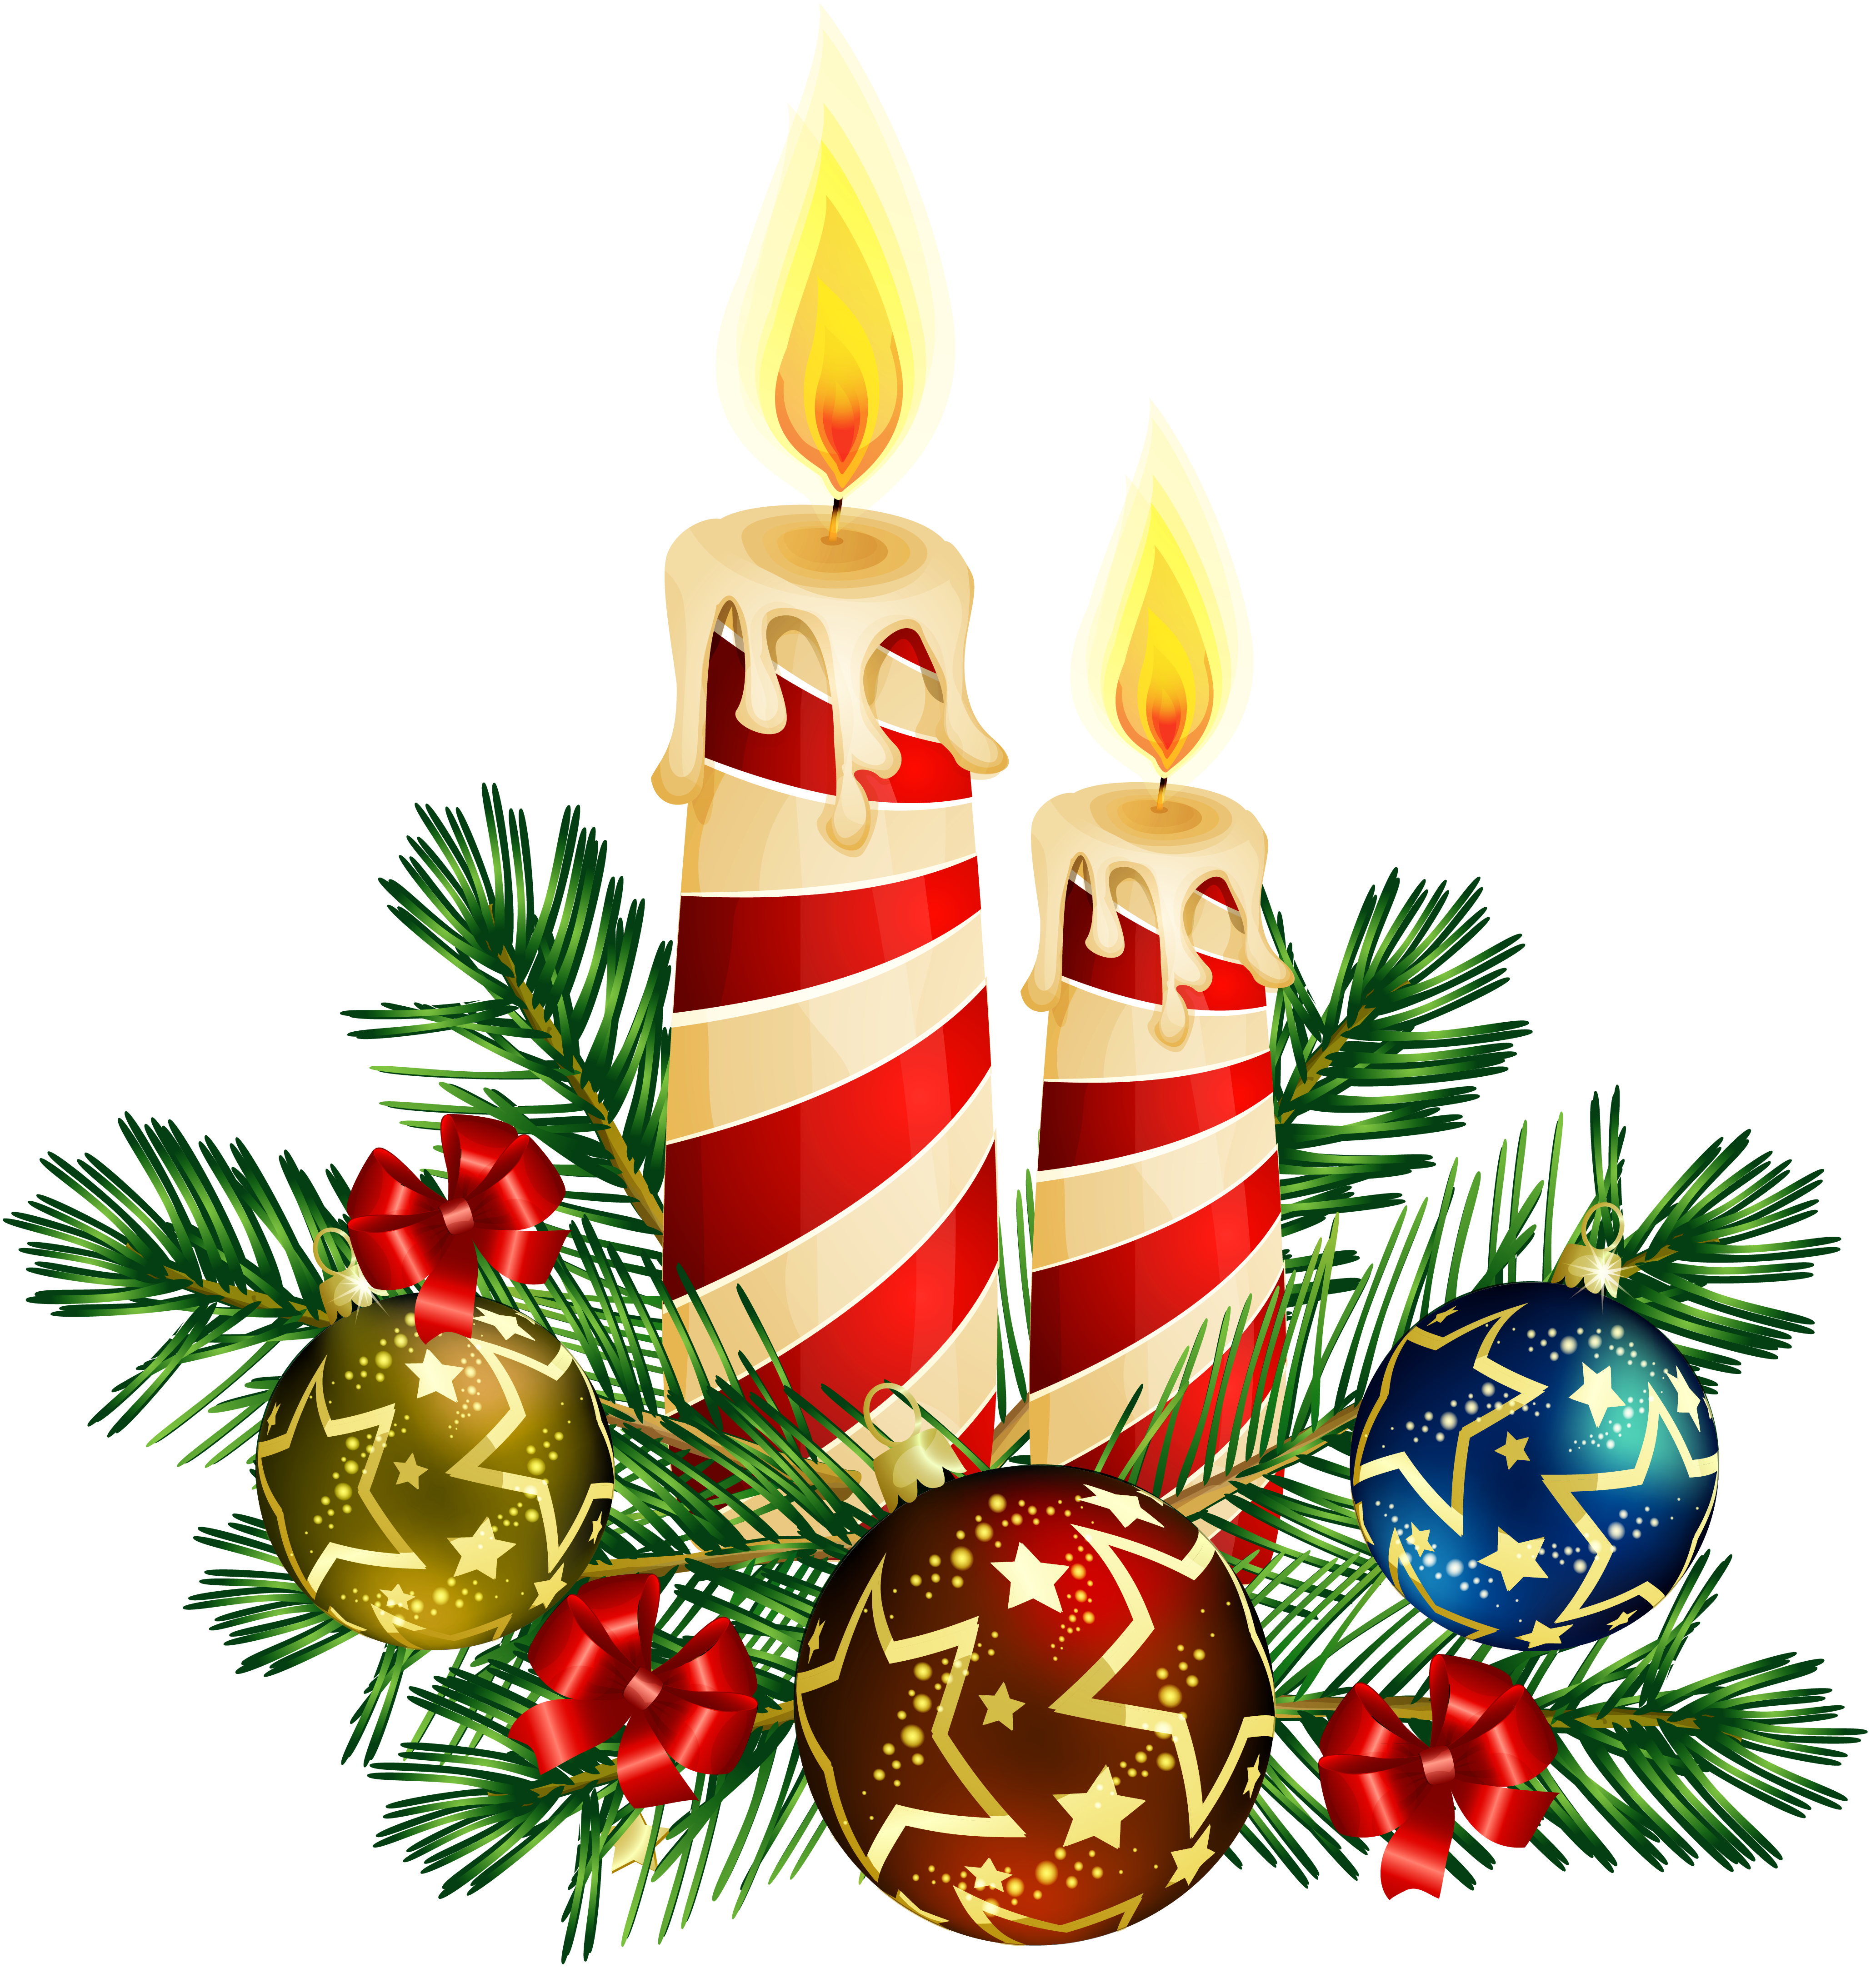 Bing clipart christmas candle picture royalty free download Free Images Christmas Candles, Download Free Clip Art, Free Clip Art ... picture royalty free download